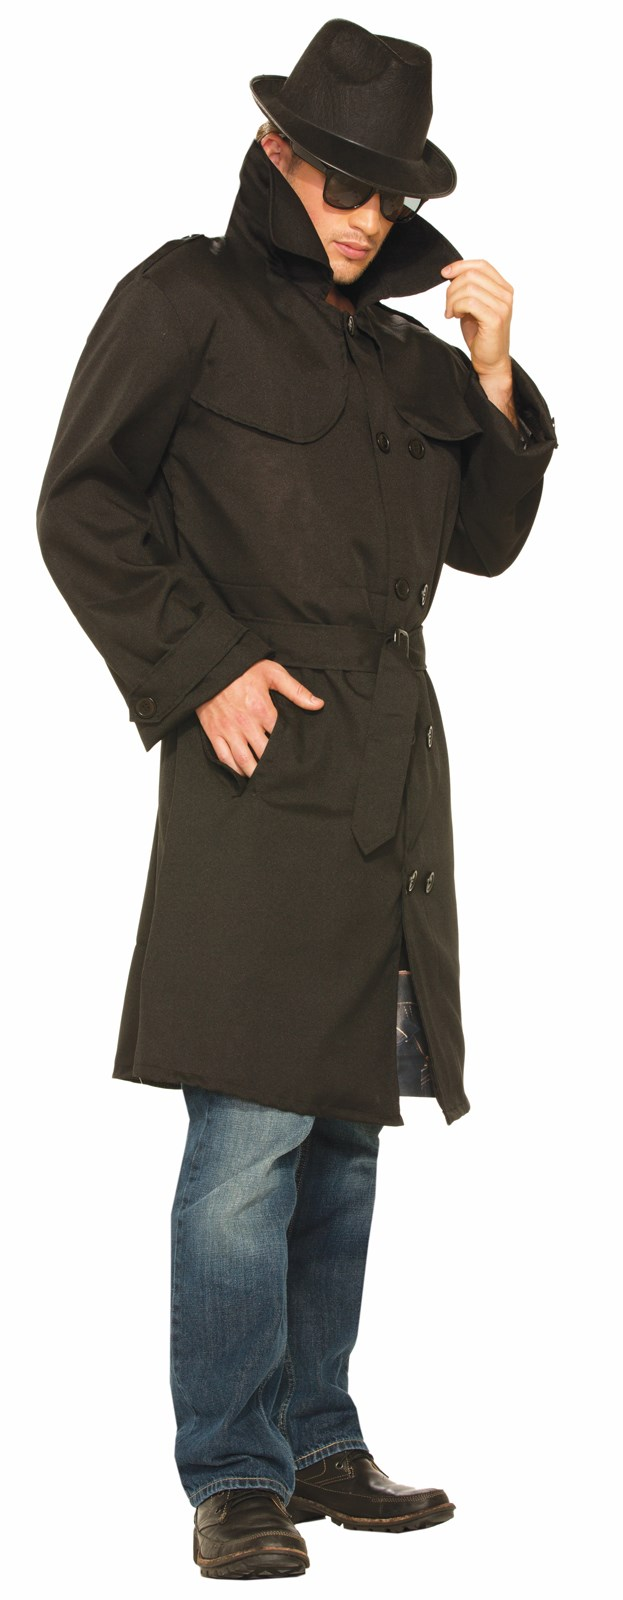 Mens Flasher Costume